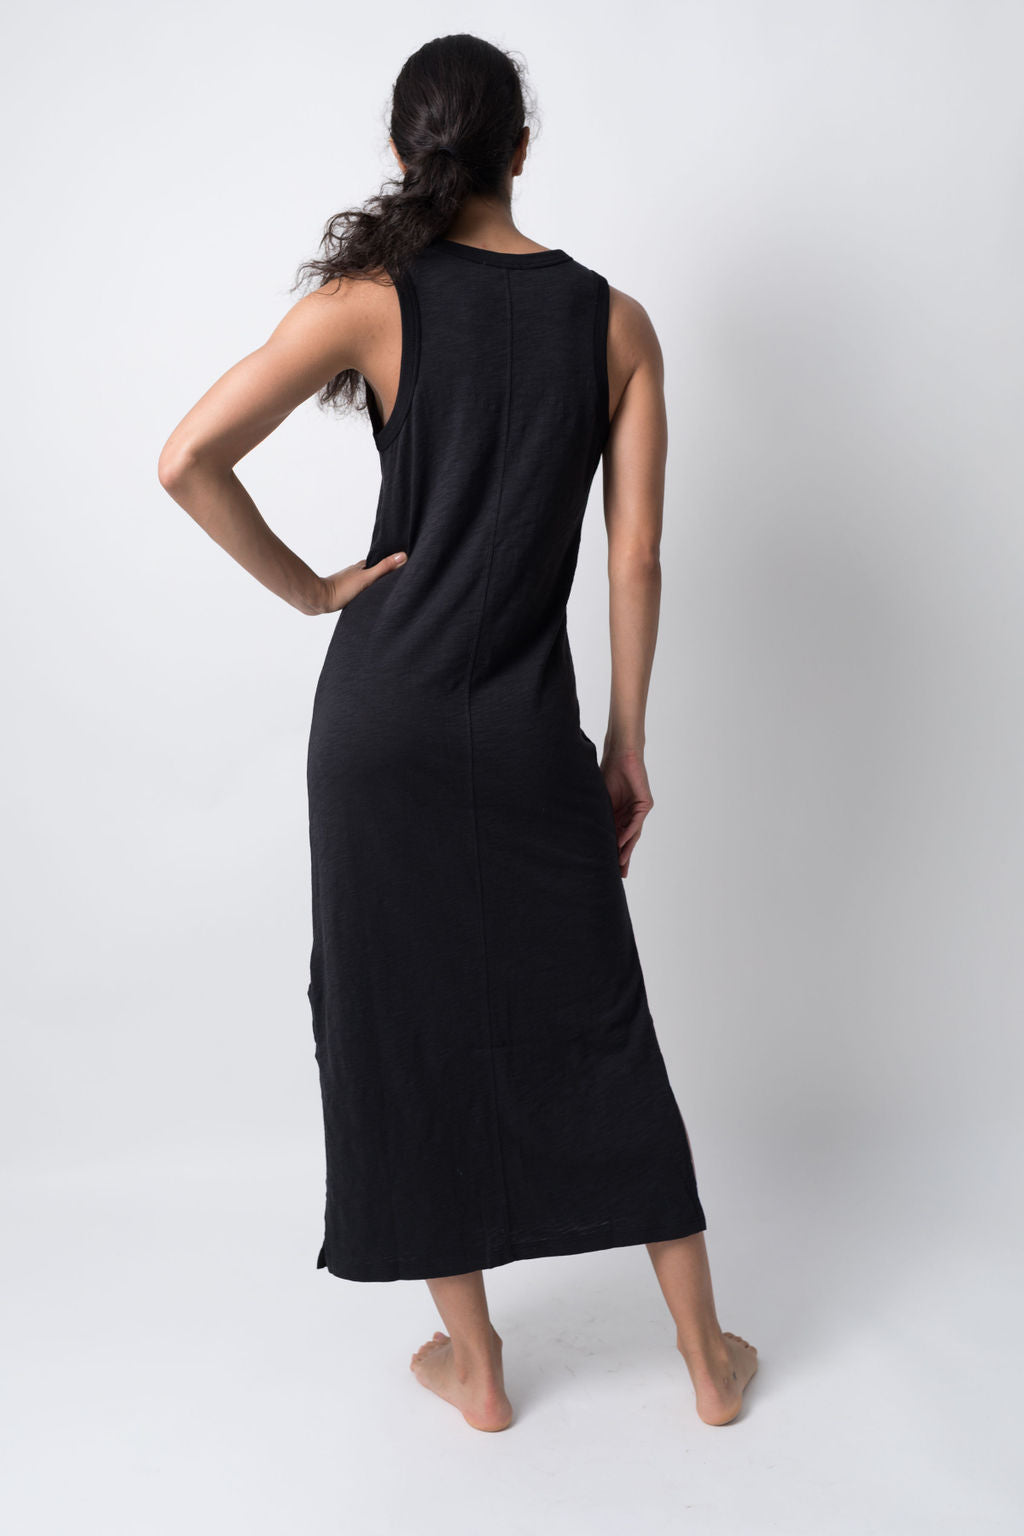 THE SIDE SLIT DRESS